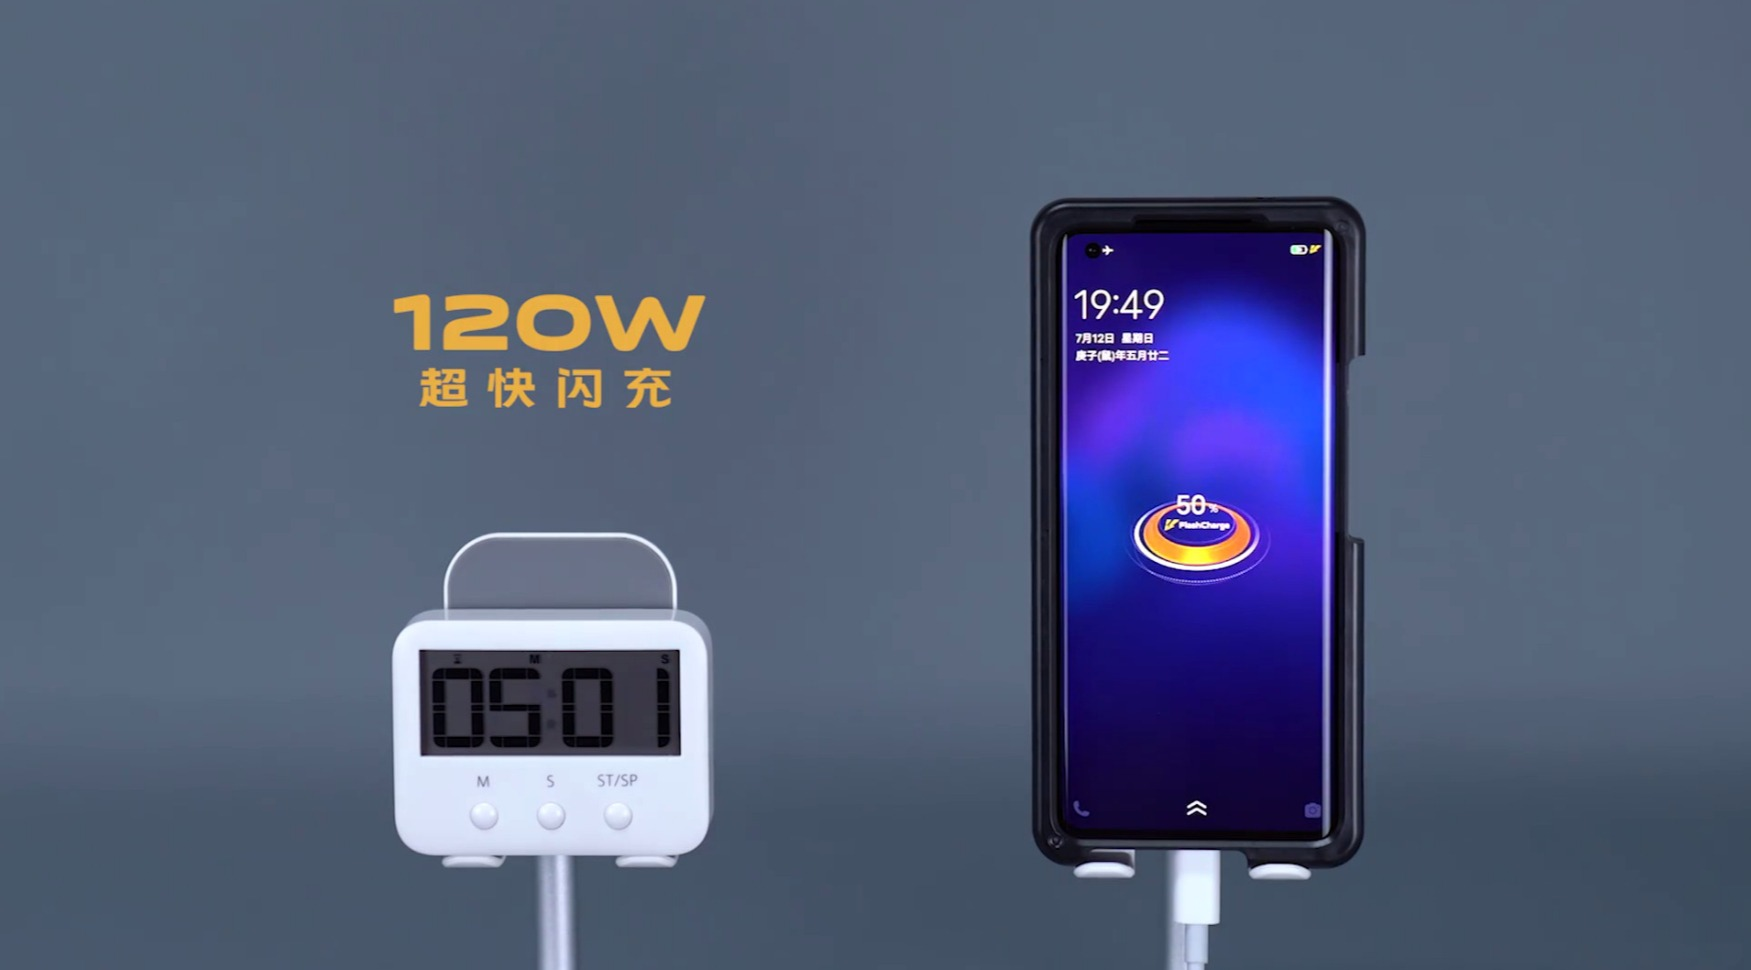 Vivo charge ultra rapide 120 W batterie